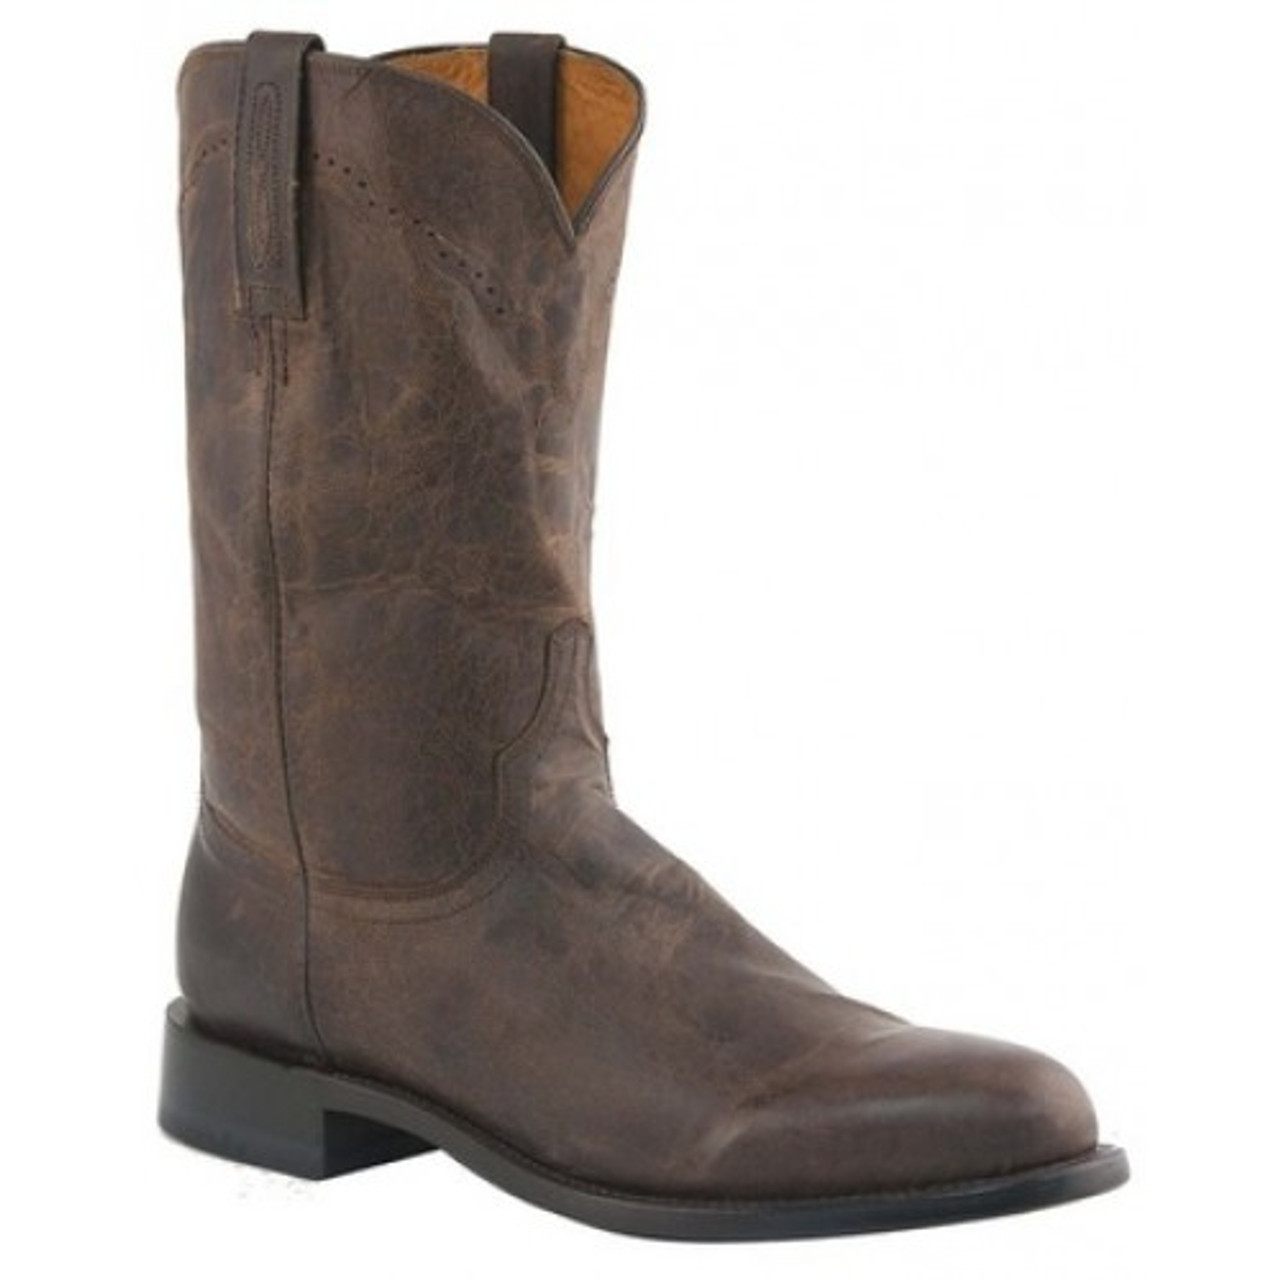 d5cd133ae0f Lucchese Men's Boots - Shane - Chocolate Madras Goat